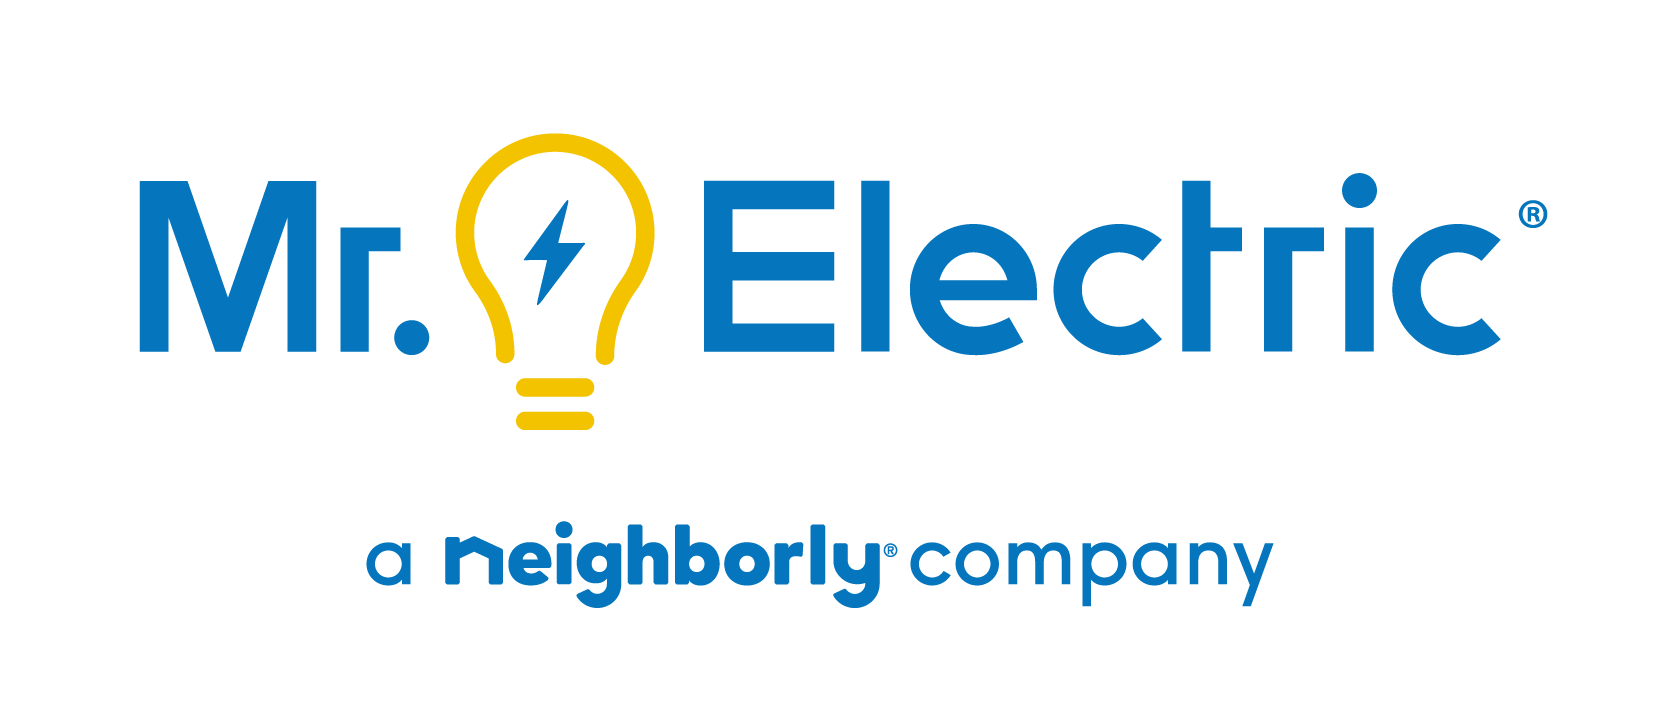 Mr. Electric of North Myrtle Beach